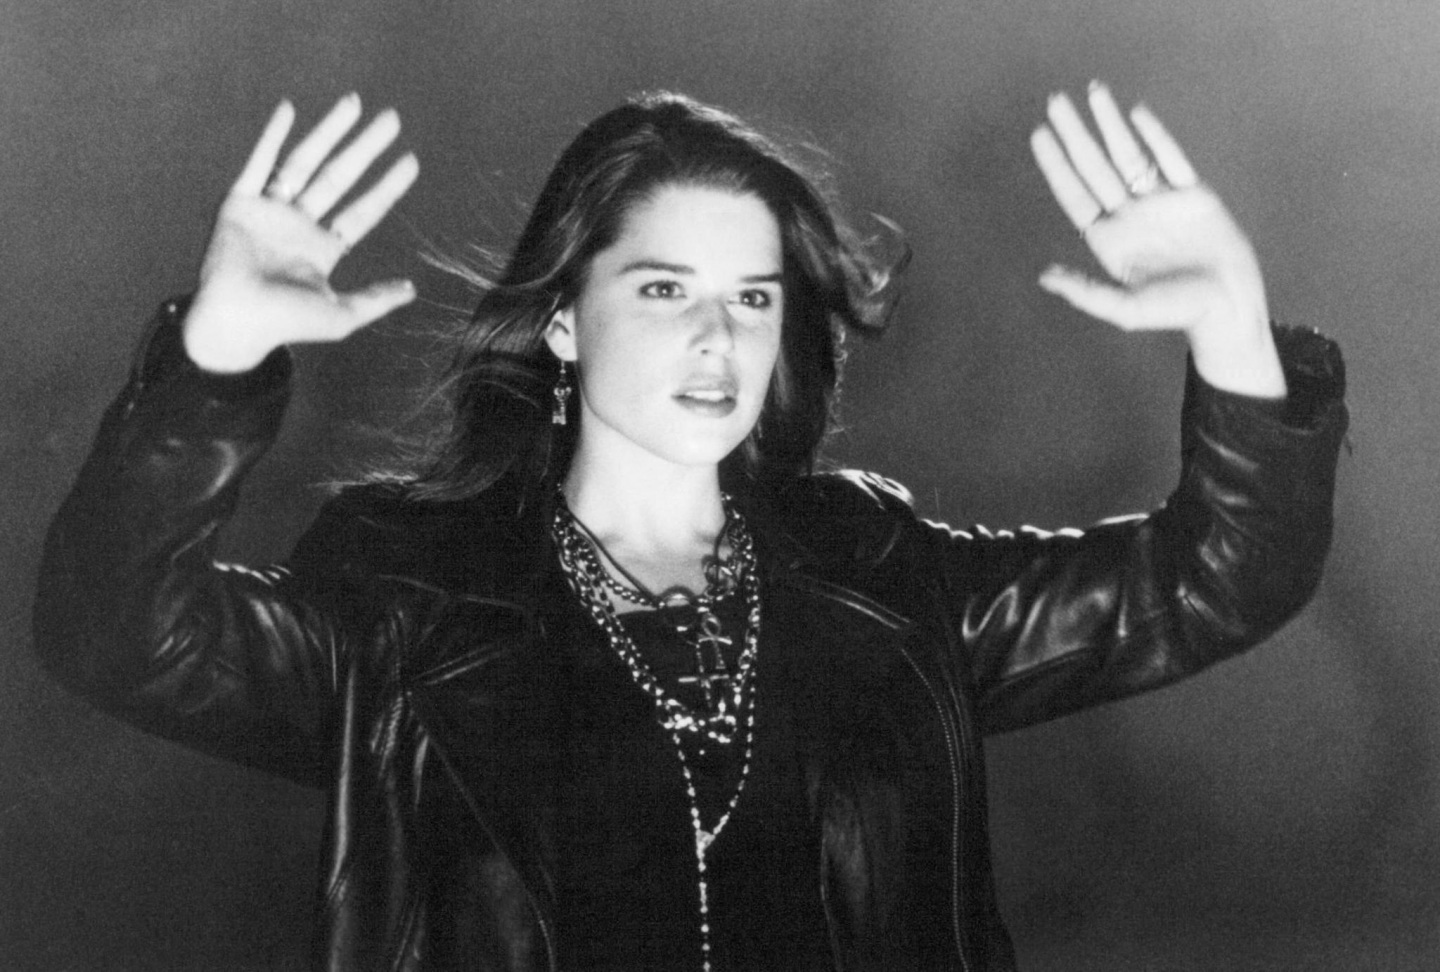 Still Of Neve Campbell In Den Onda Cirkeln Large Picture The Craft